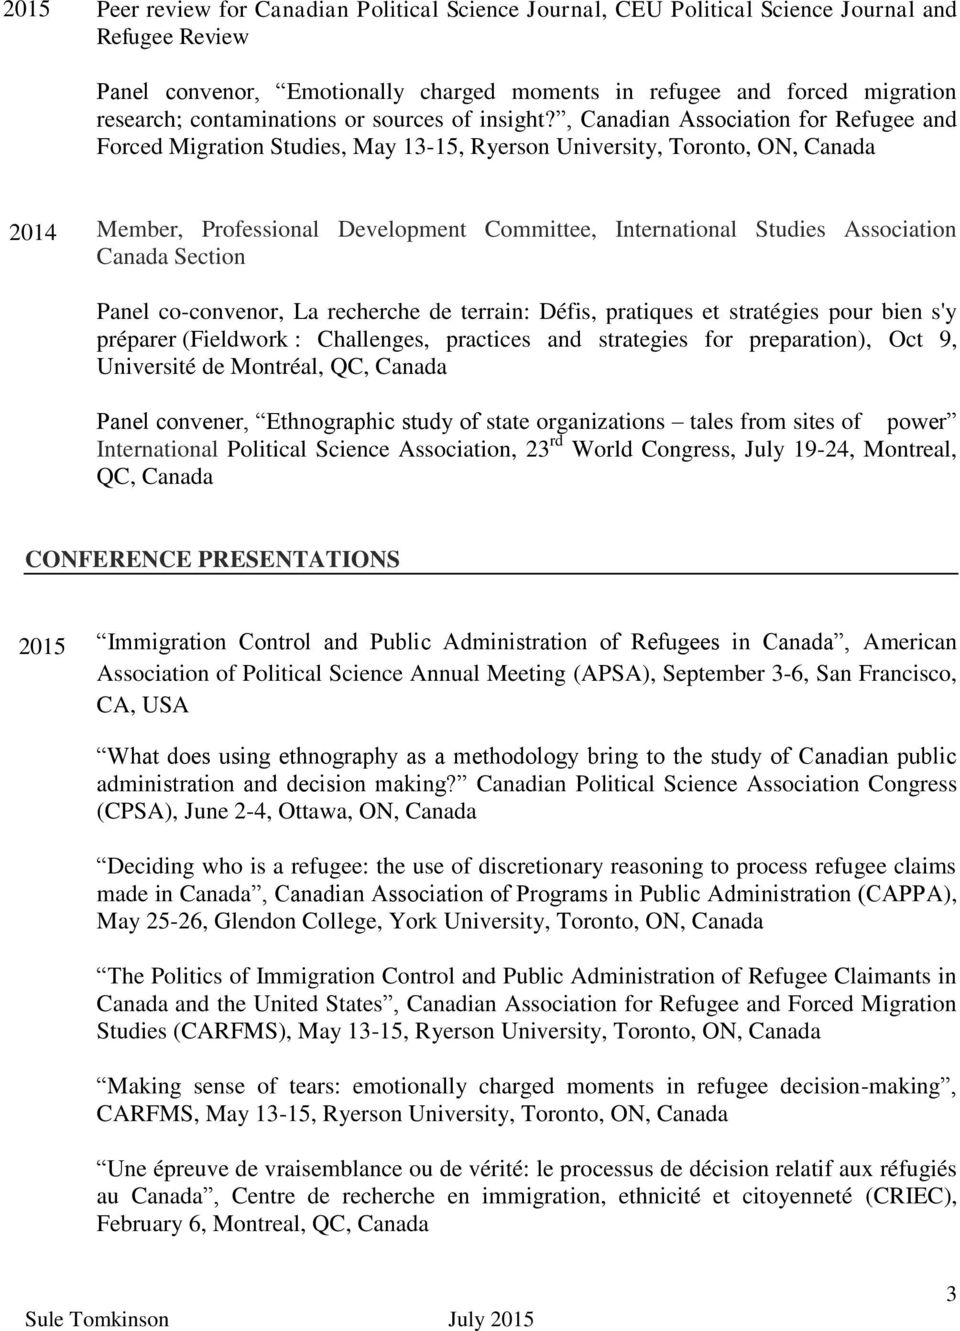 , Canadian Association for Refugee and Forced Migration Studies, May 13-15, Ryerson University, Toronto, ON, Canada 2014 Member, Professional Development Committee, International Studies Association